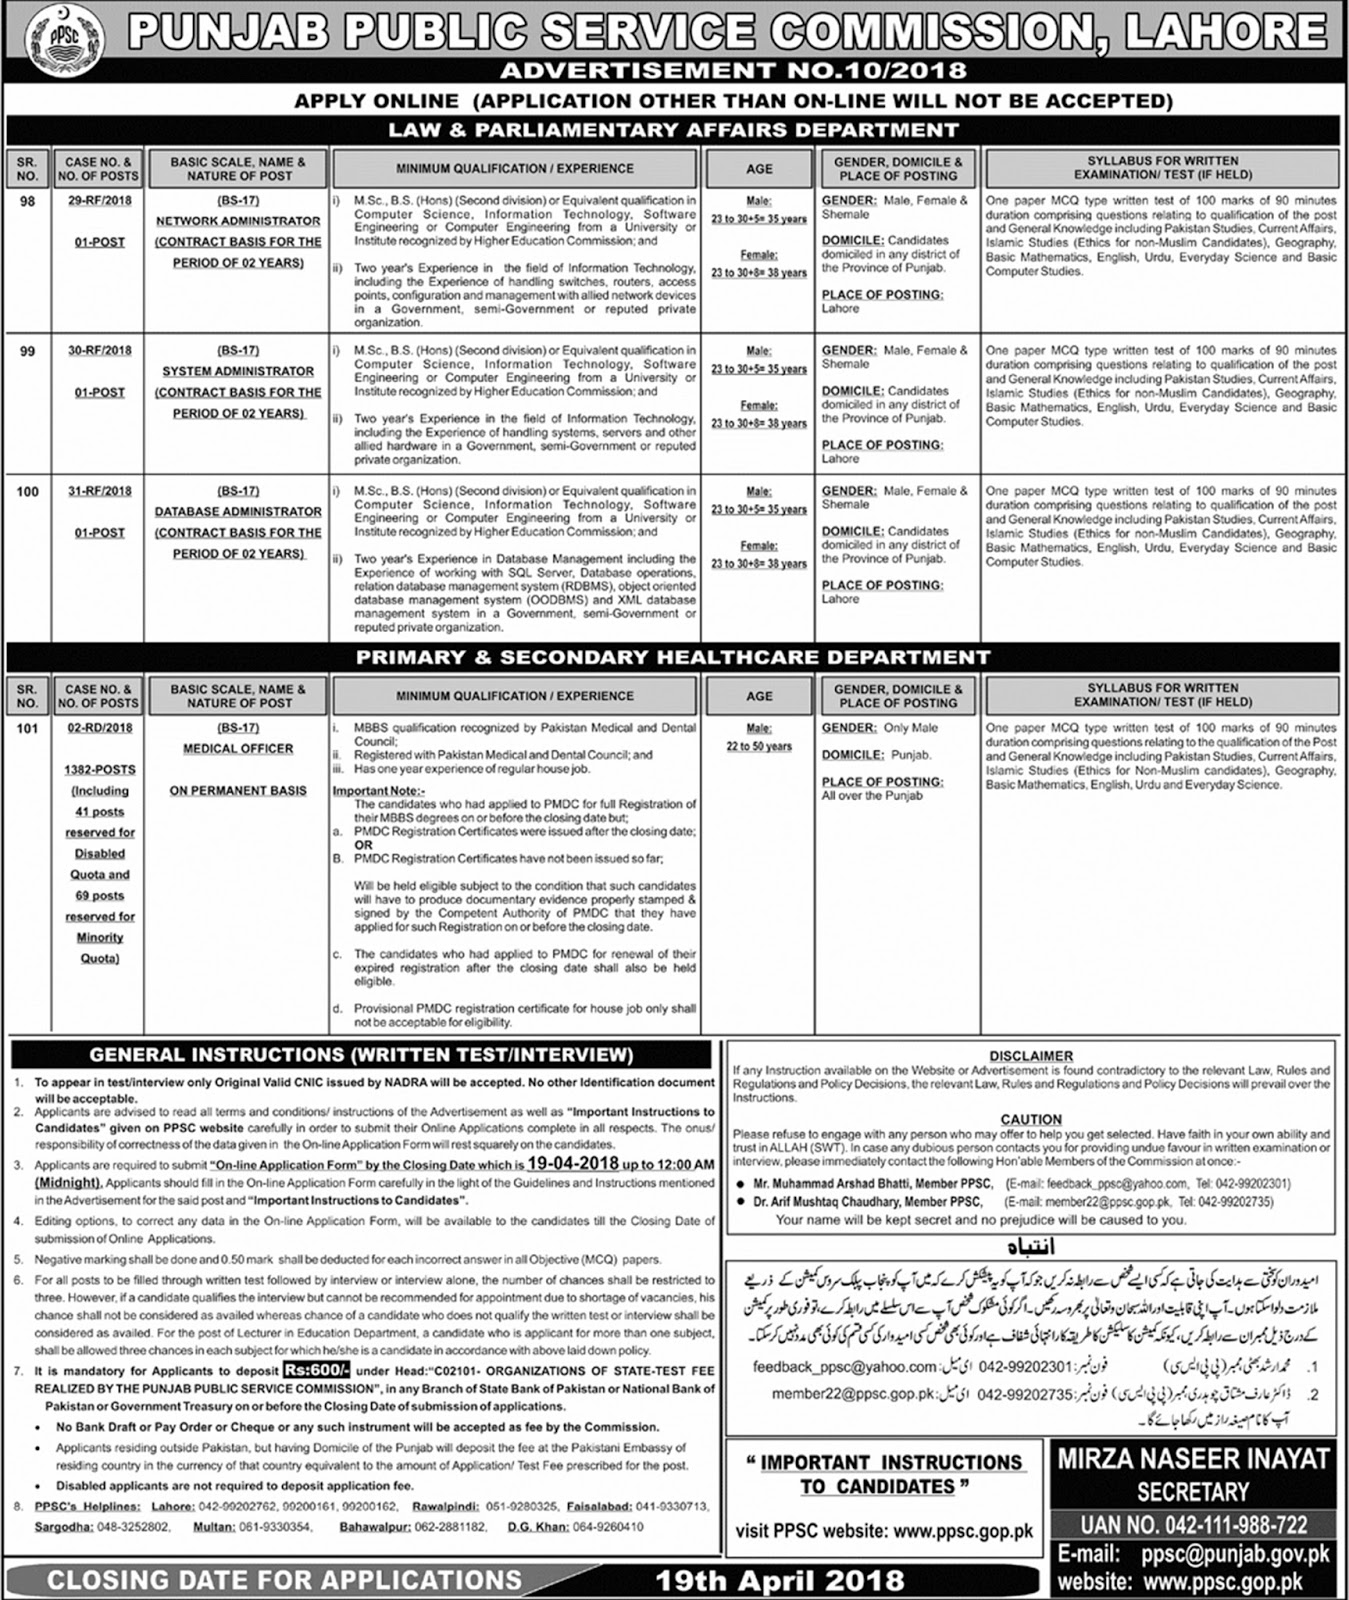 Jobs PPSC Punjab Public Service Commission Advertisement No 10/2018 - Apply Online